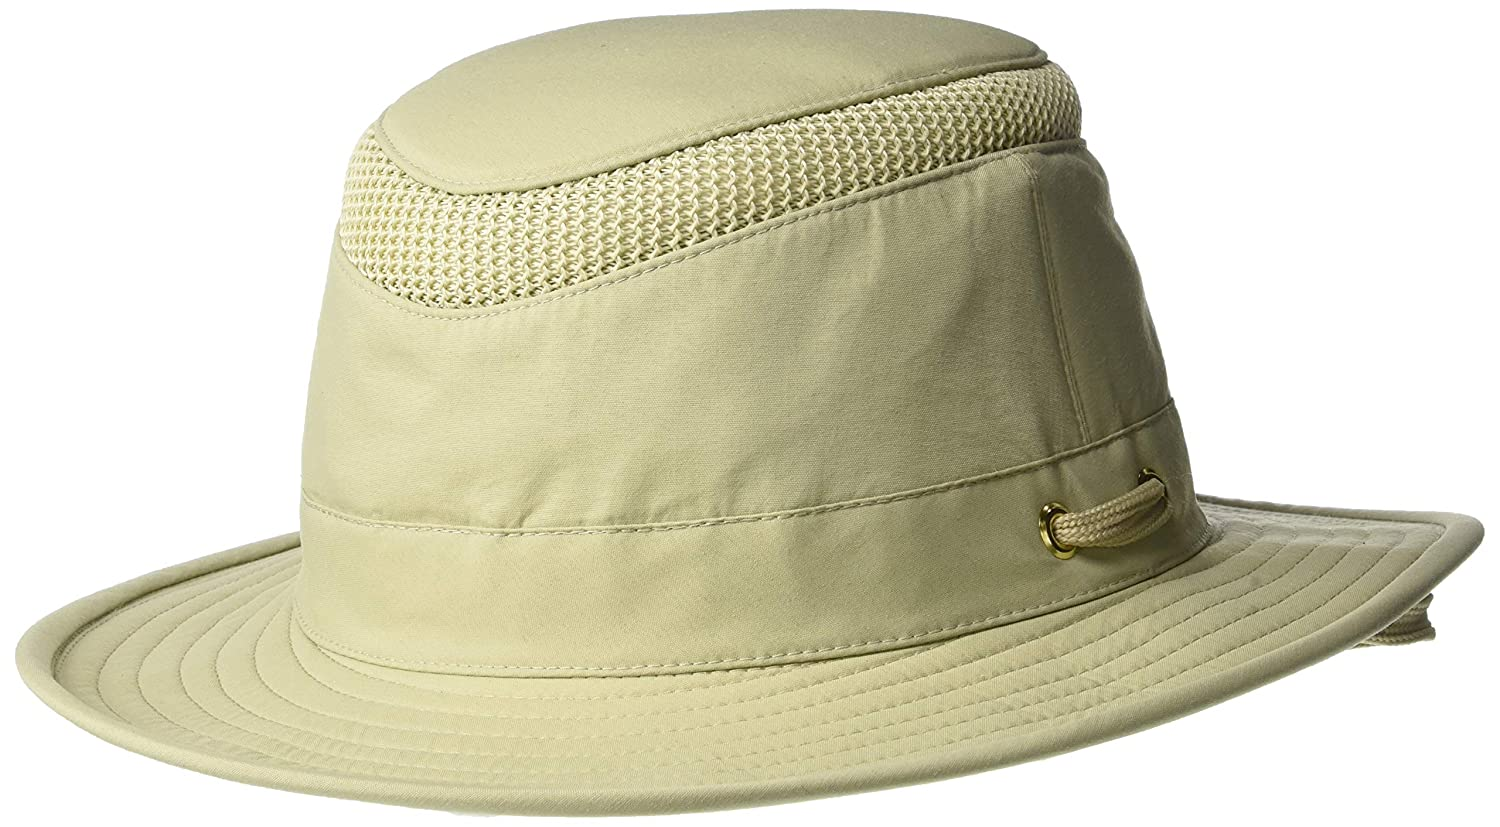 Amazon.com  Tilley Endurables LTM5 Airflo Unisex Hat  Home Improvement 1d5c6fbc6be7